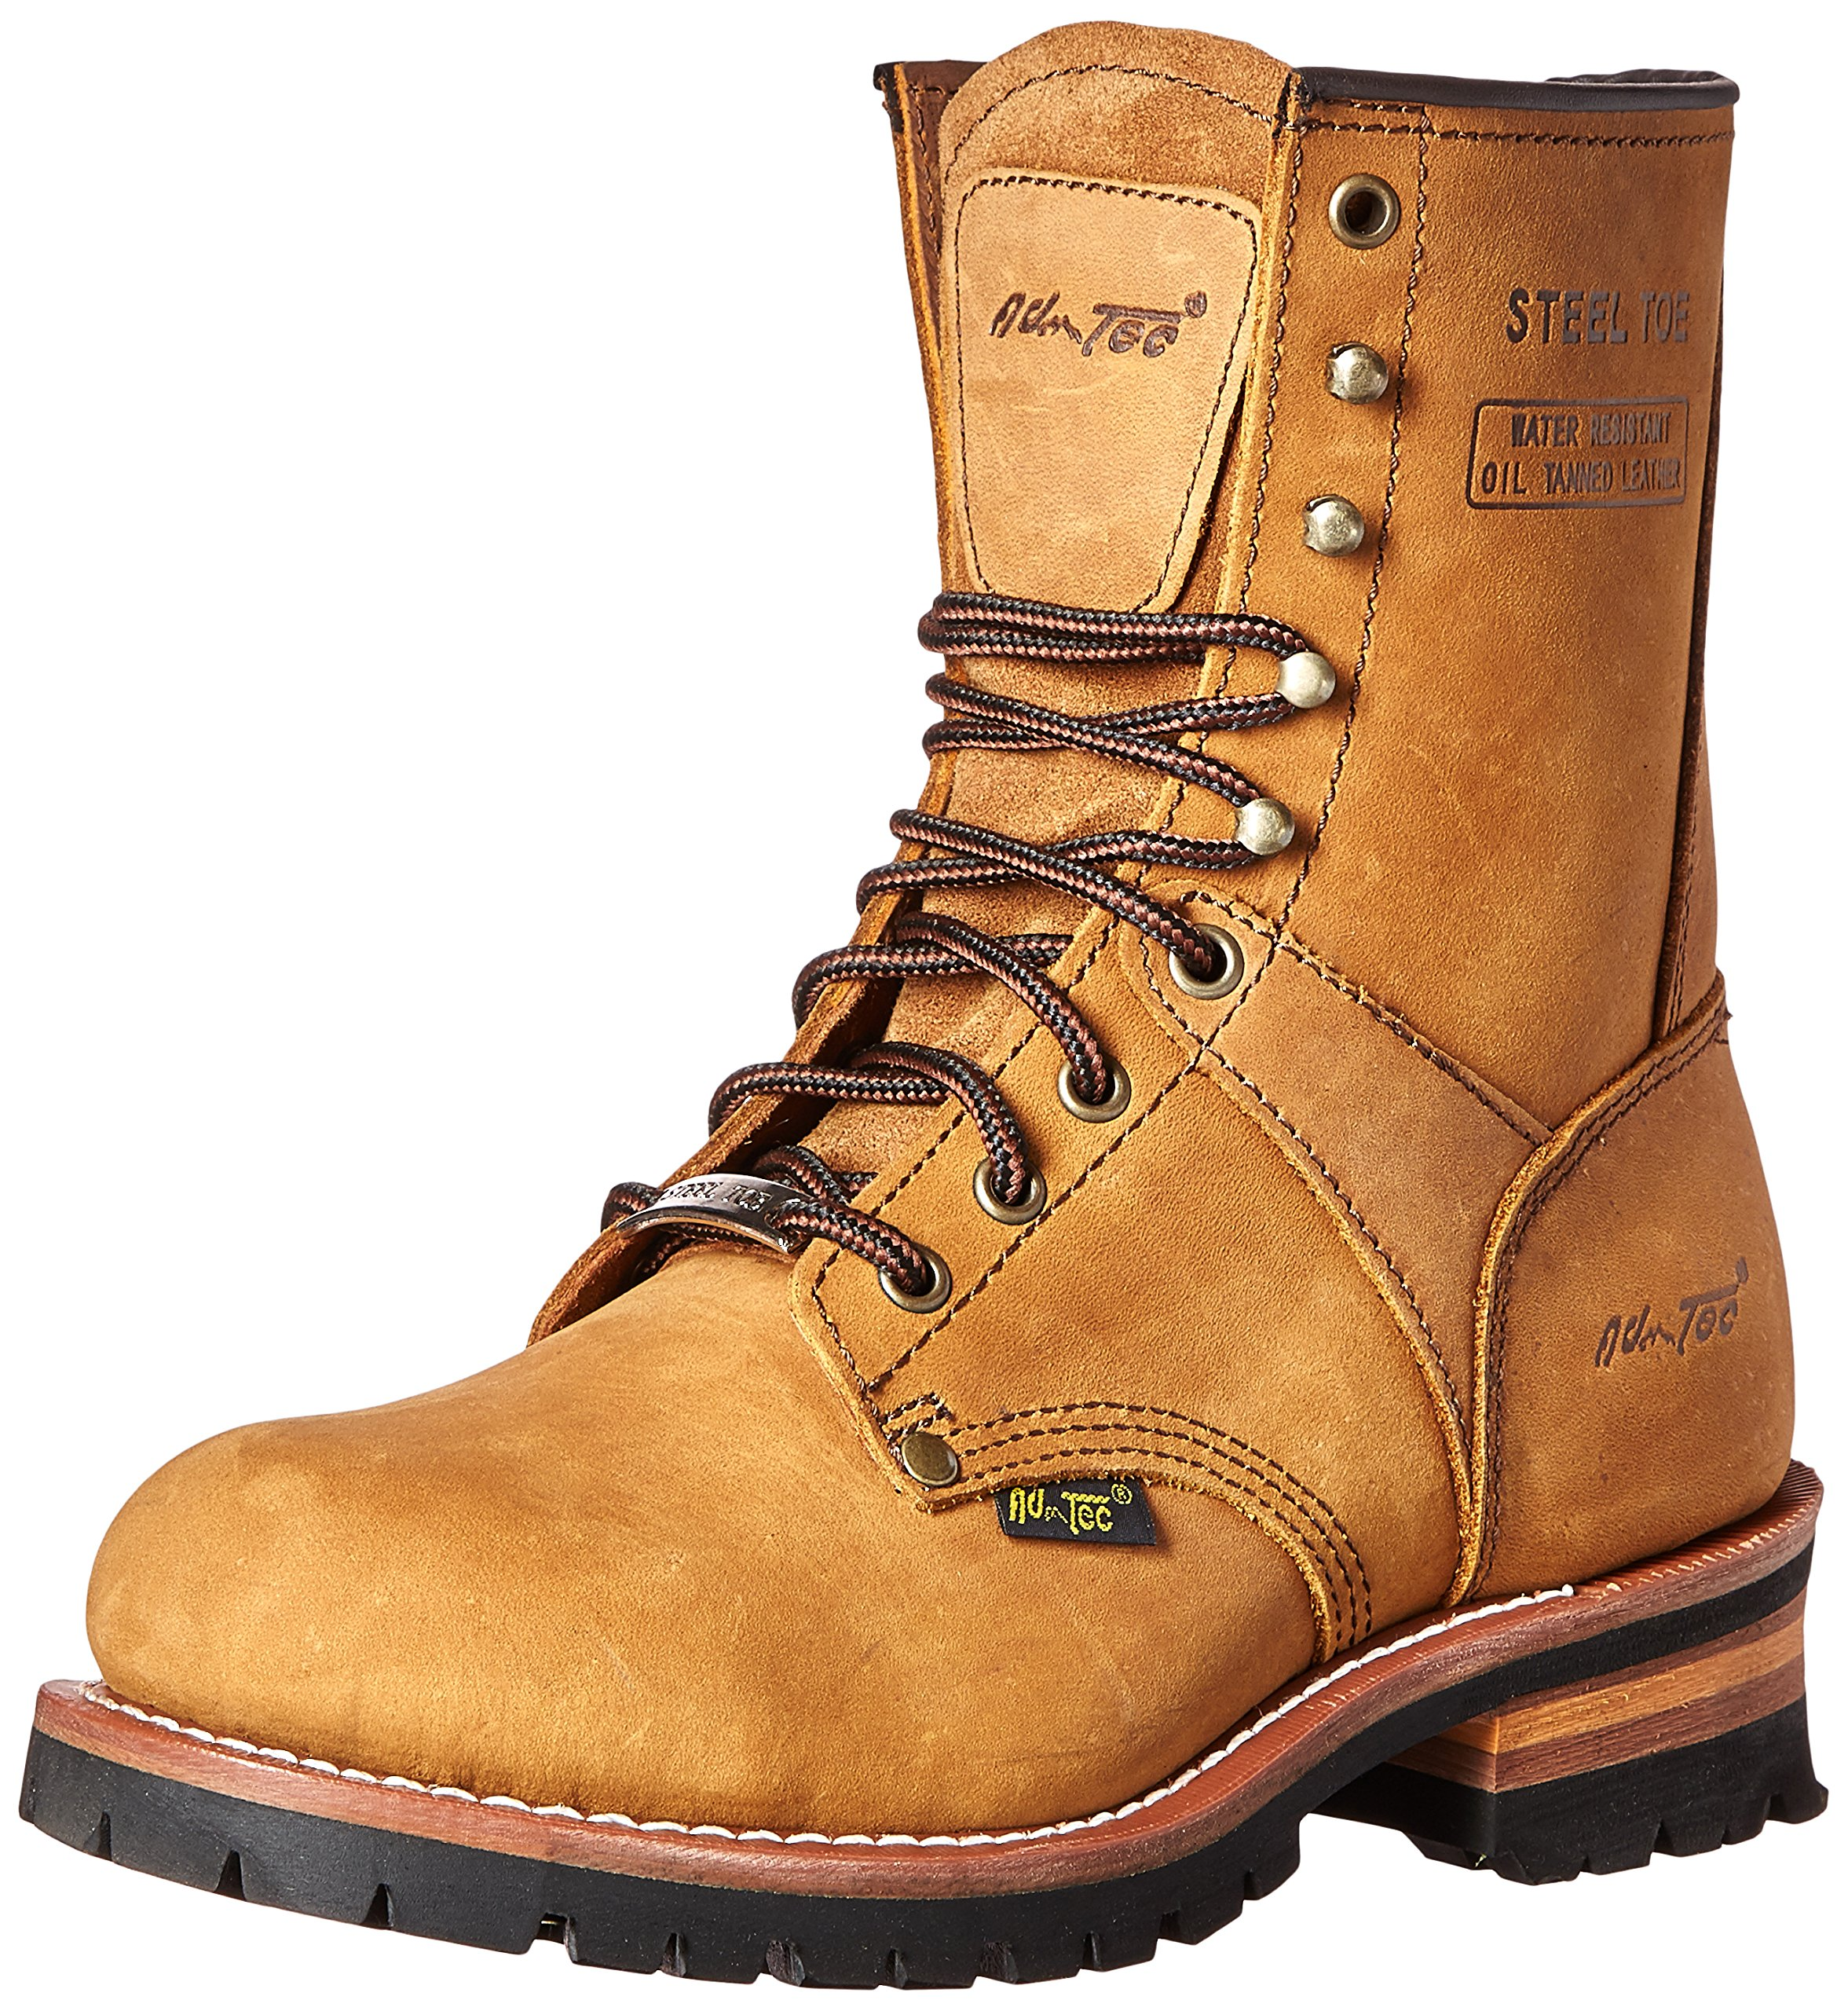 Adtec Men's 9 inch Steel Toe Logger Boot, Brown, 12 M US